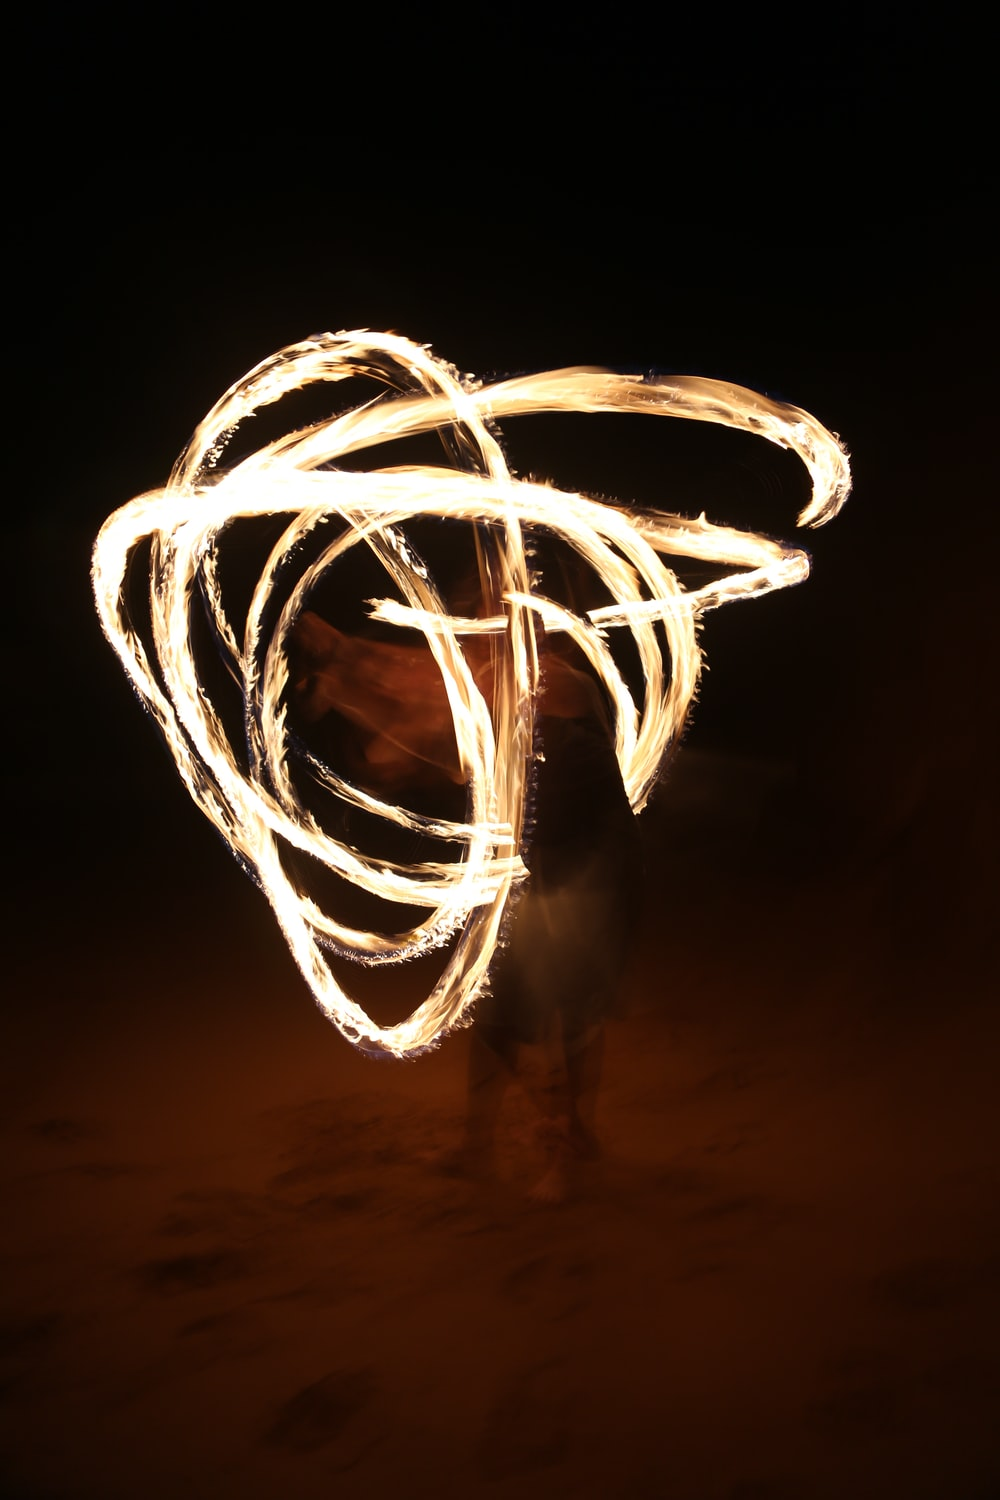 fire dancing at night time